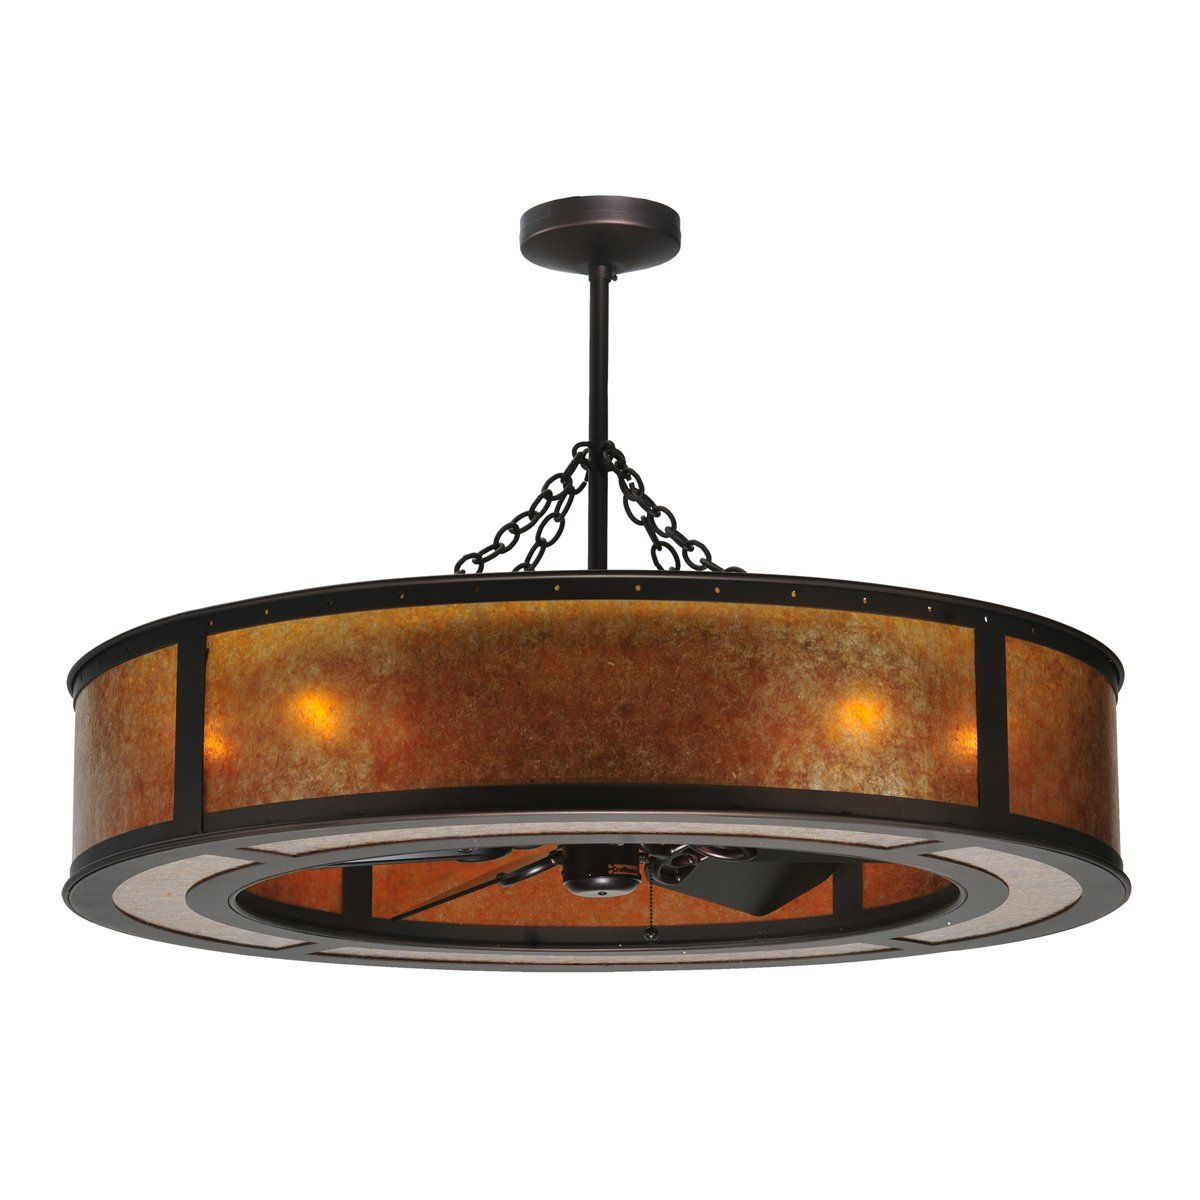 Meyda Tiffany Custom 108445 8 Light 44in Smythe Craftsman